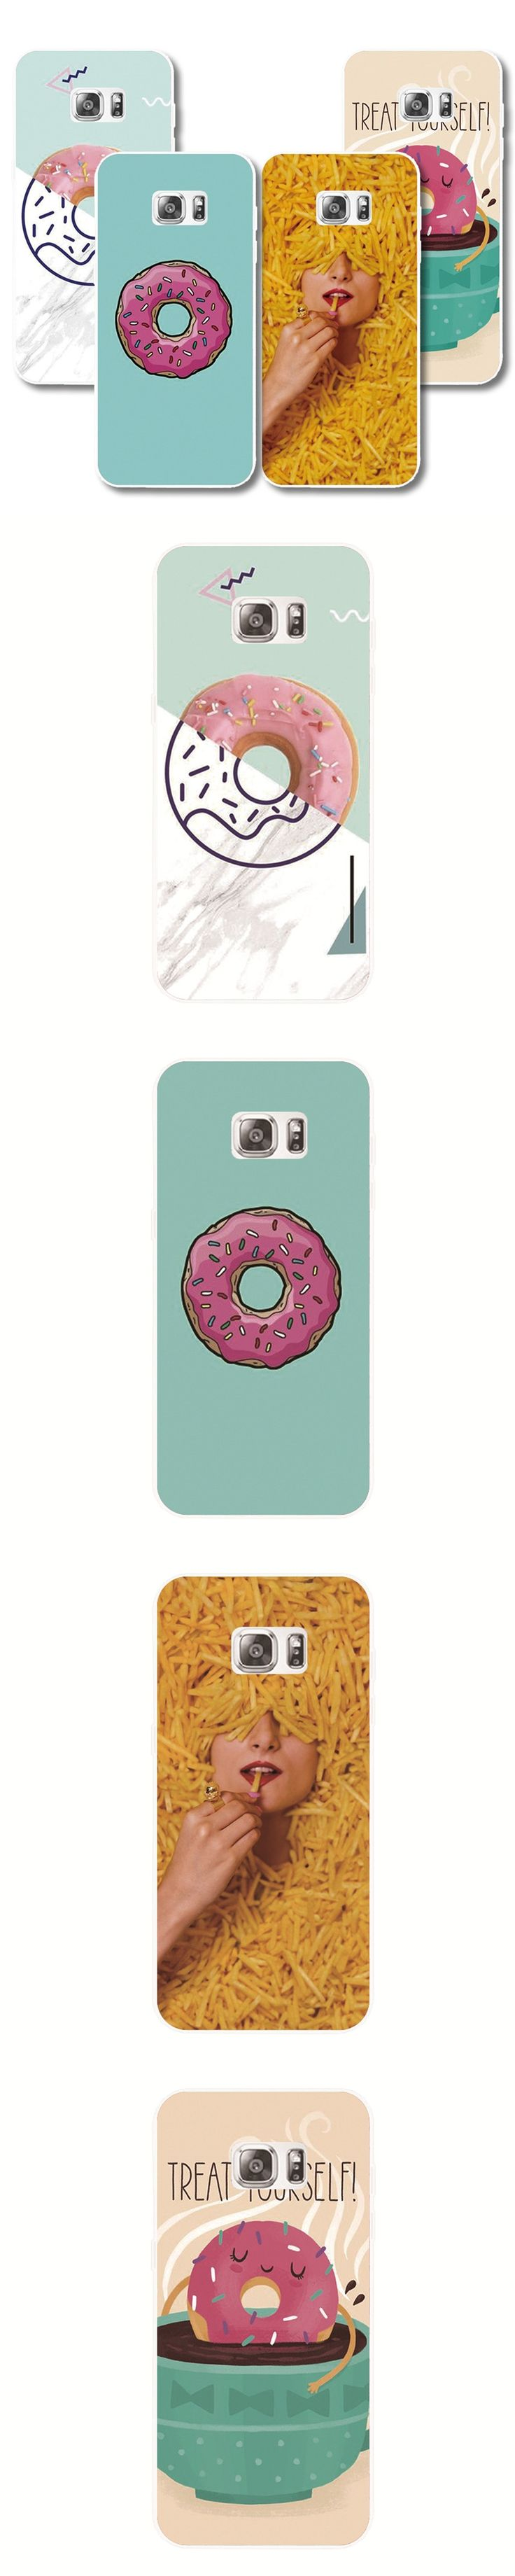 Fries & Donut Food pattern Plastic cover phone case For Samsung Galaxy S8 s6 s7 edge s5 s4 s3 s8 Plus protective shell